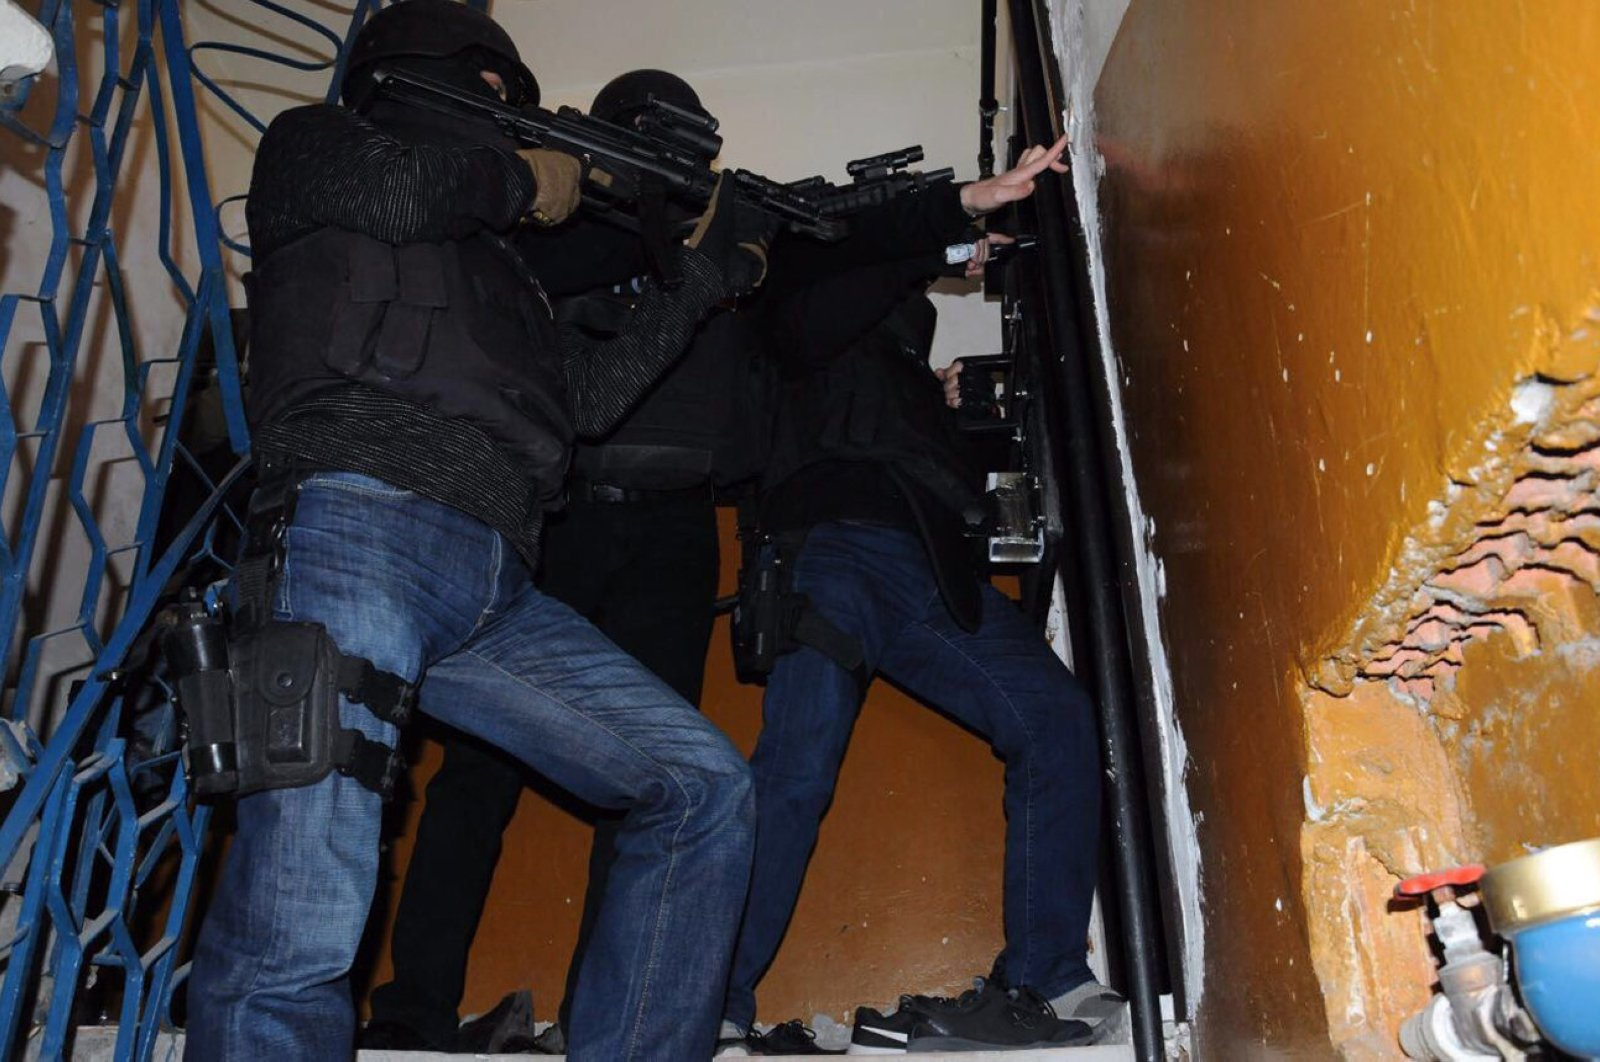 Turkish security forces raid an apartment in Istanbul during a counter-terror operation (Sabah File Photo)